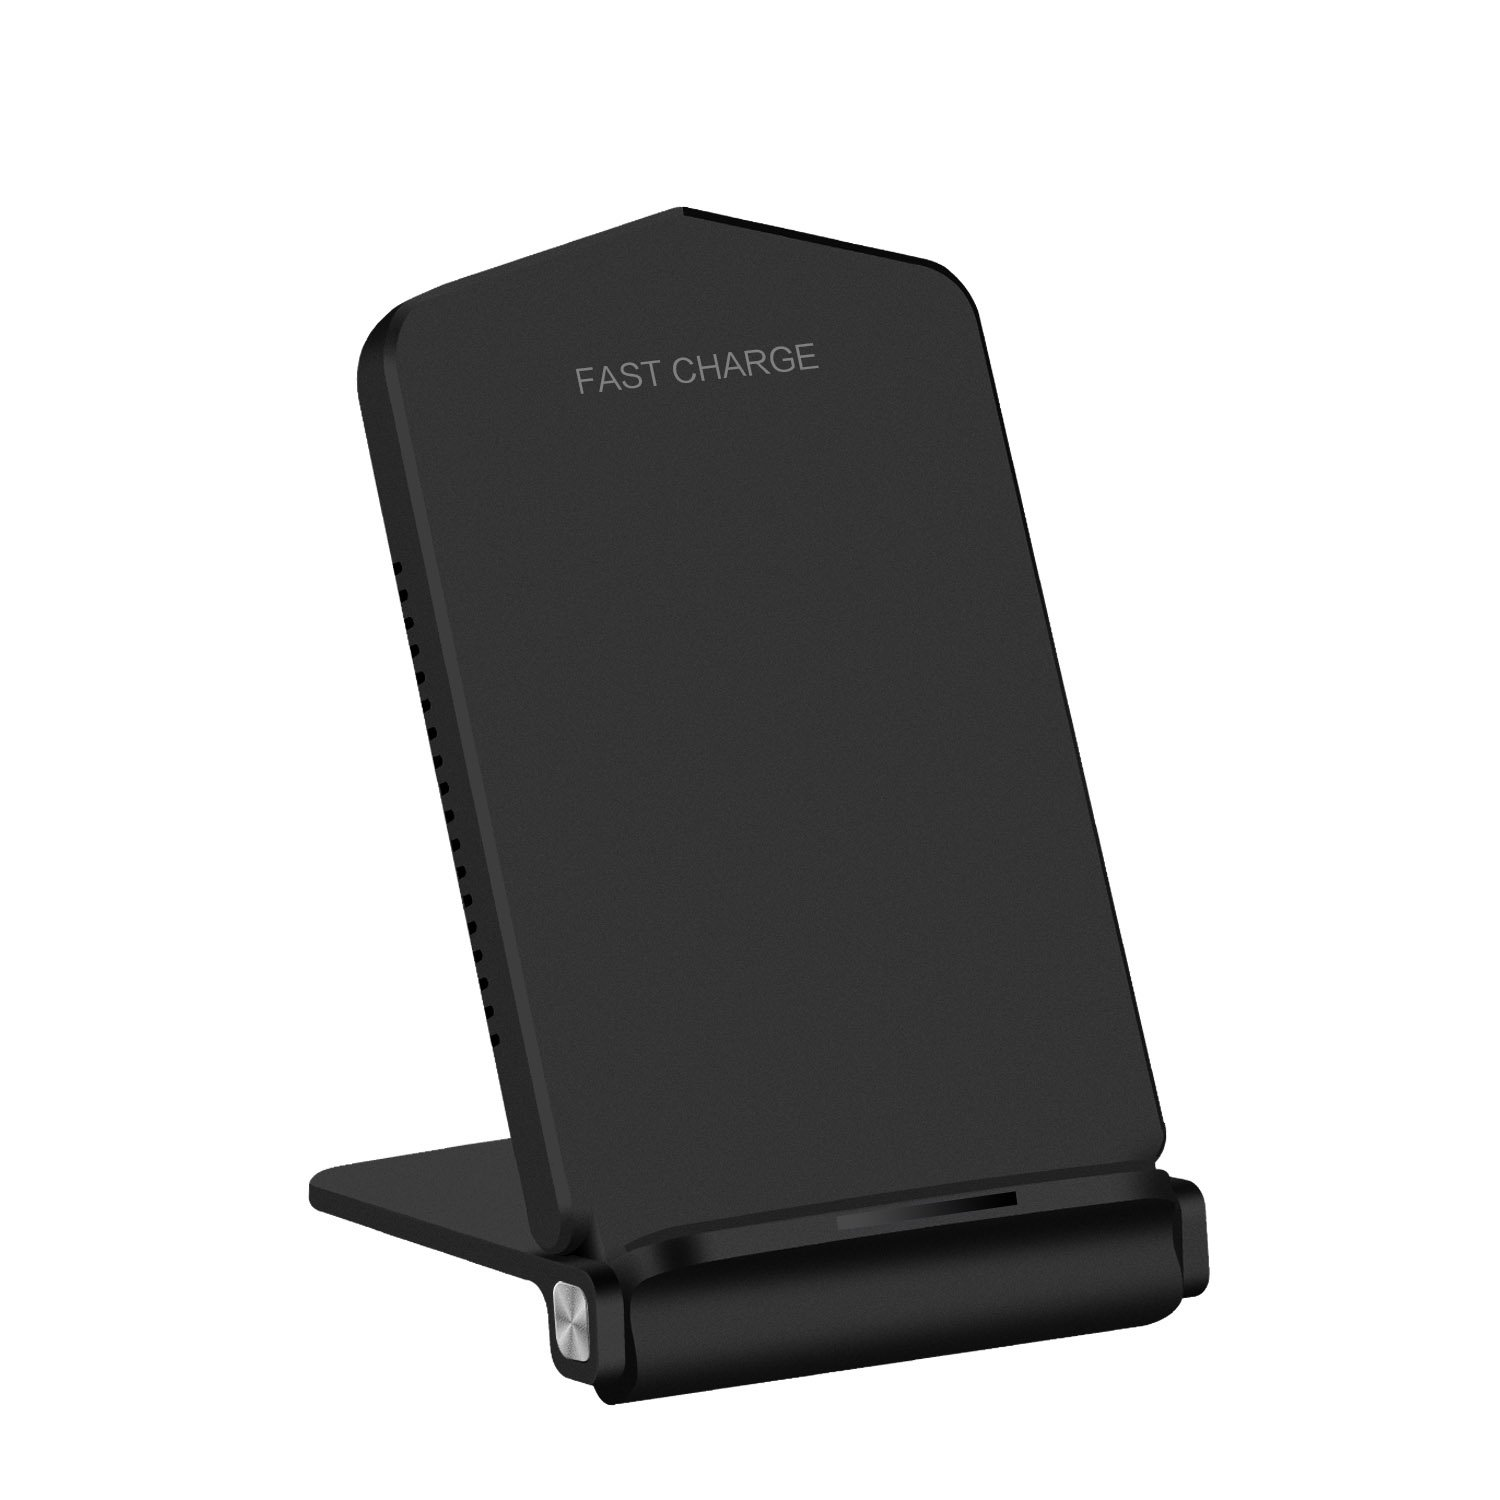 Qi Wireless Quick Charging Pad Stand, 2-Coil Fast Wireless Charger for Galaxy S9/S9 Plus, Galaxy Note 8, iPhone X, iPhone 8/8 Plus, and most Qi-Enabled Devices - Black